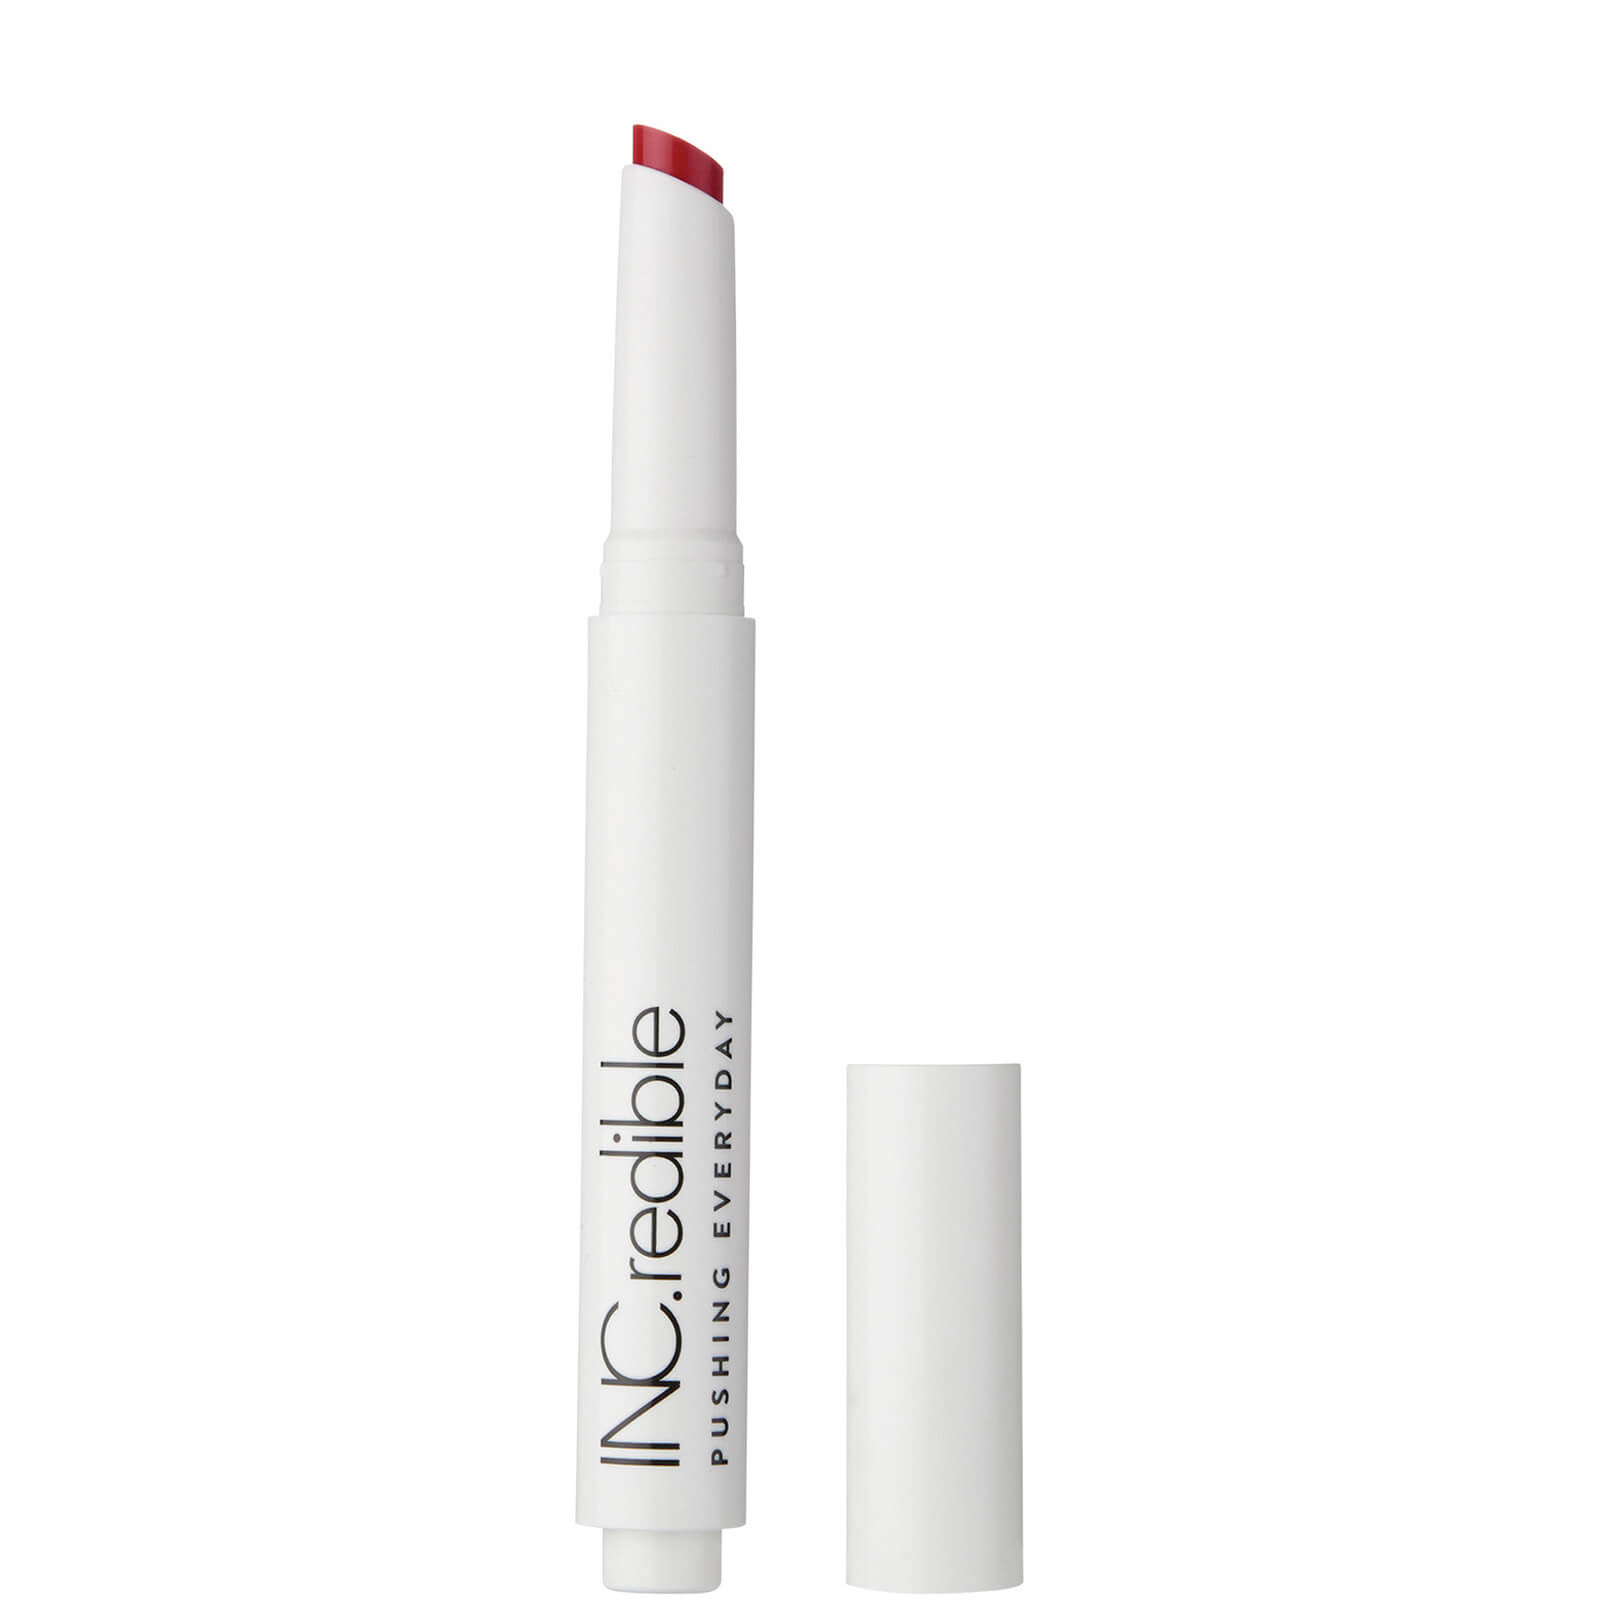 INC.redible Pushing Everyday rossetto semi-mat a pressione (varie tonalità) - Oh Hey